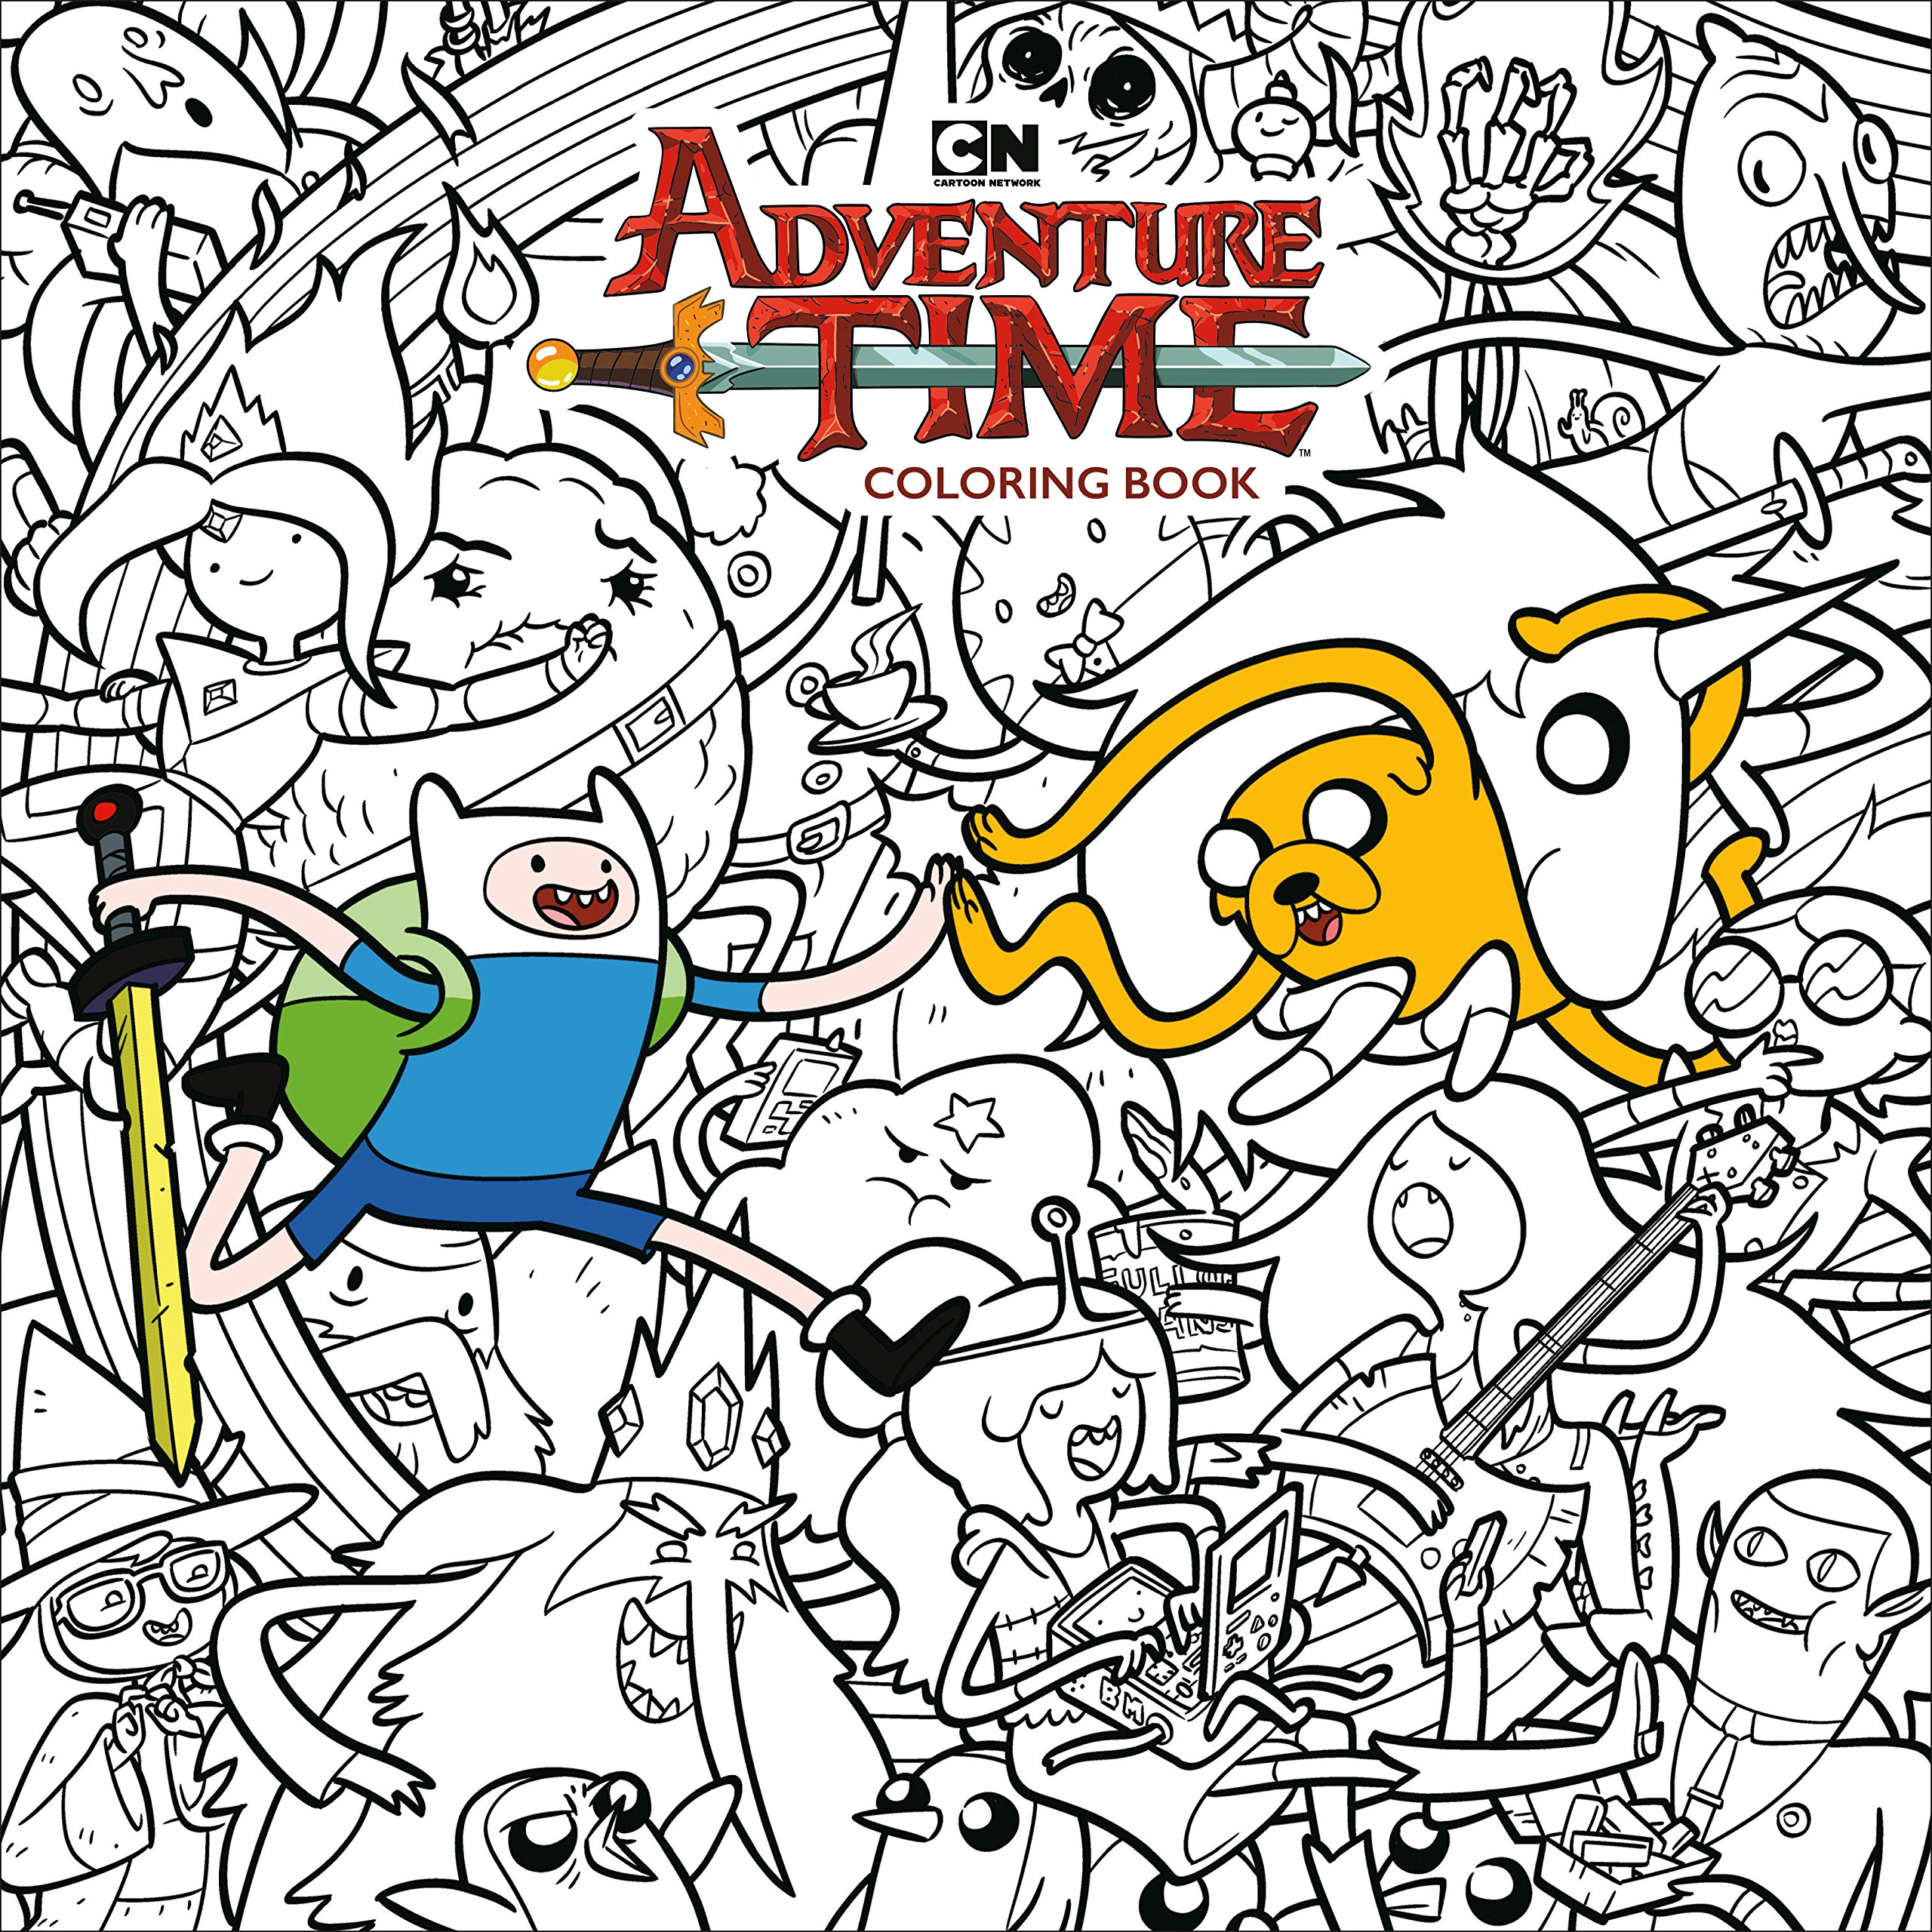 - Amazon.com: Adventure Time Adult Coloring Book Volume 1